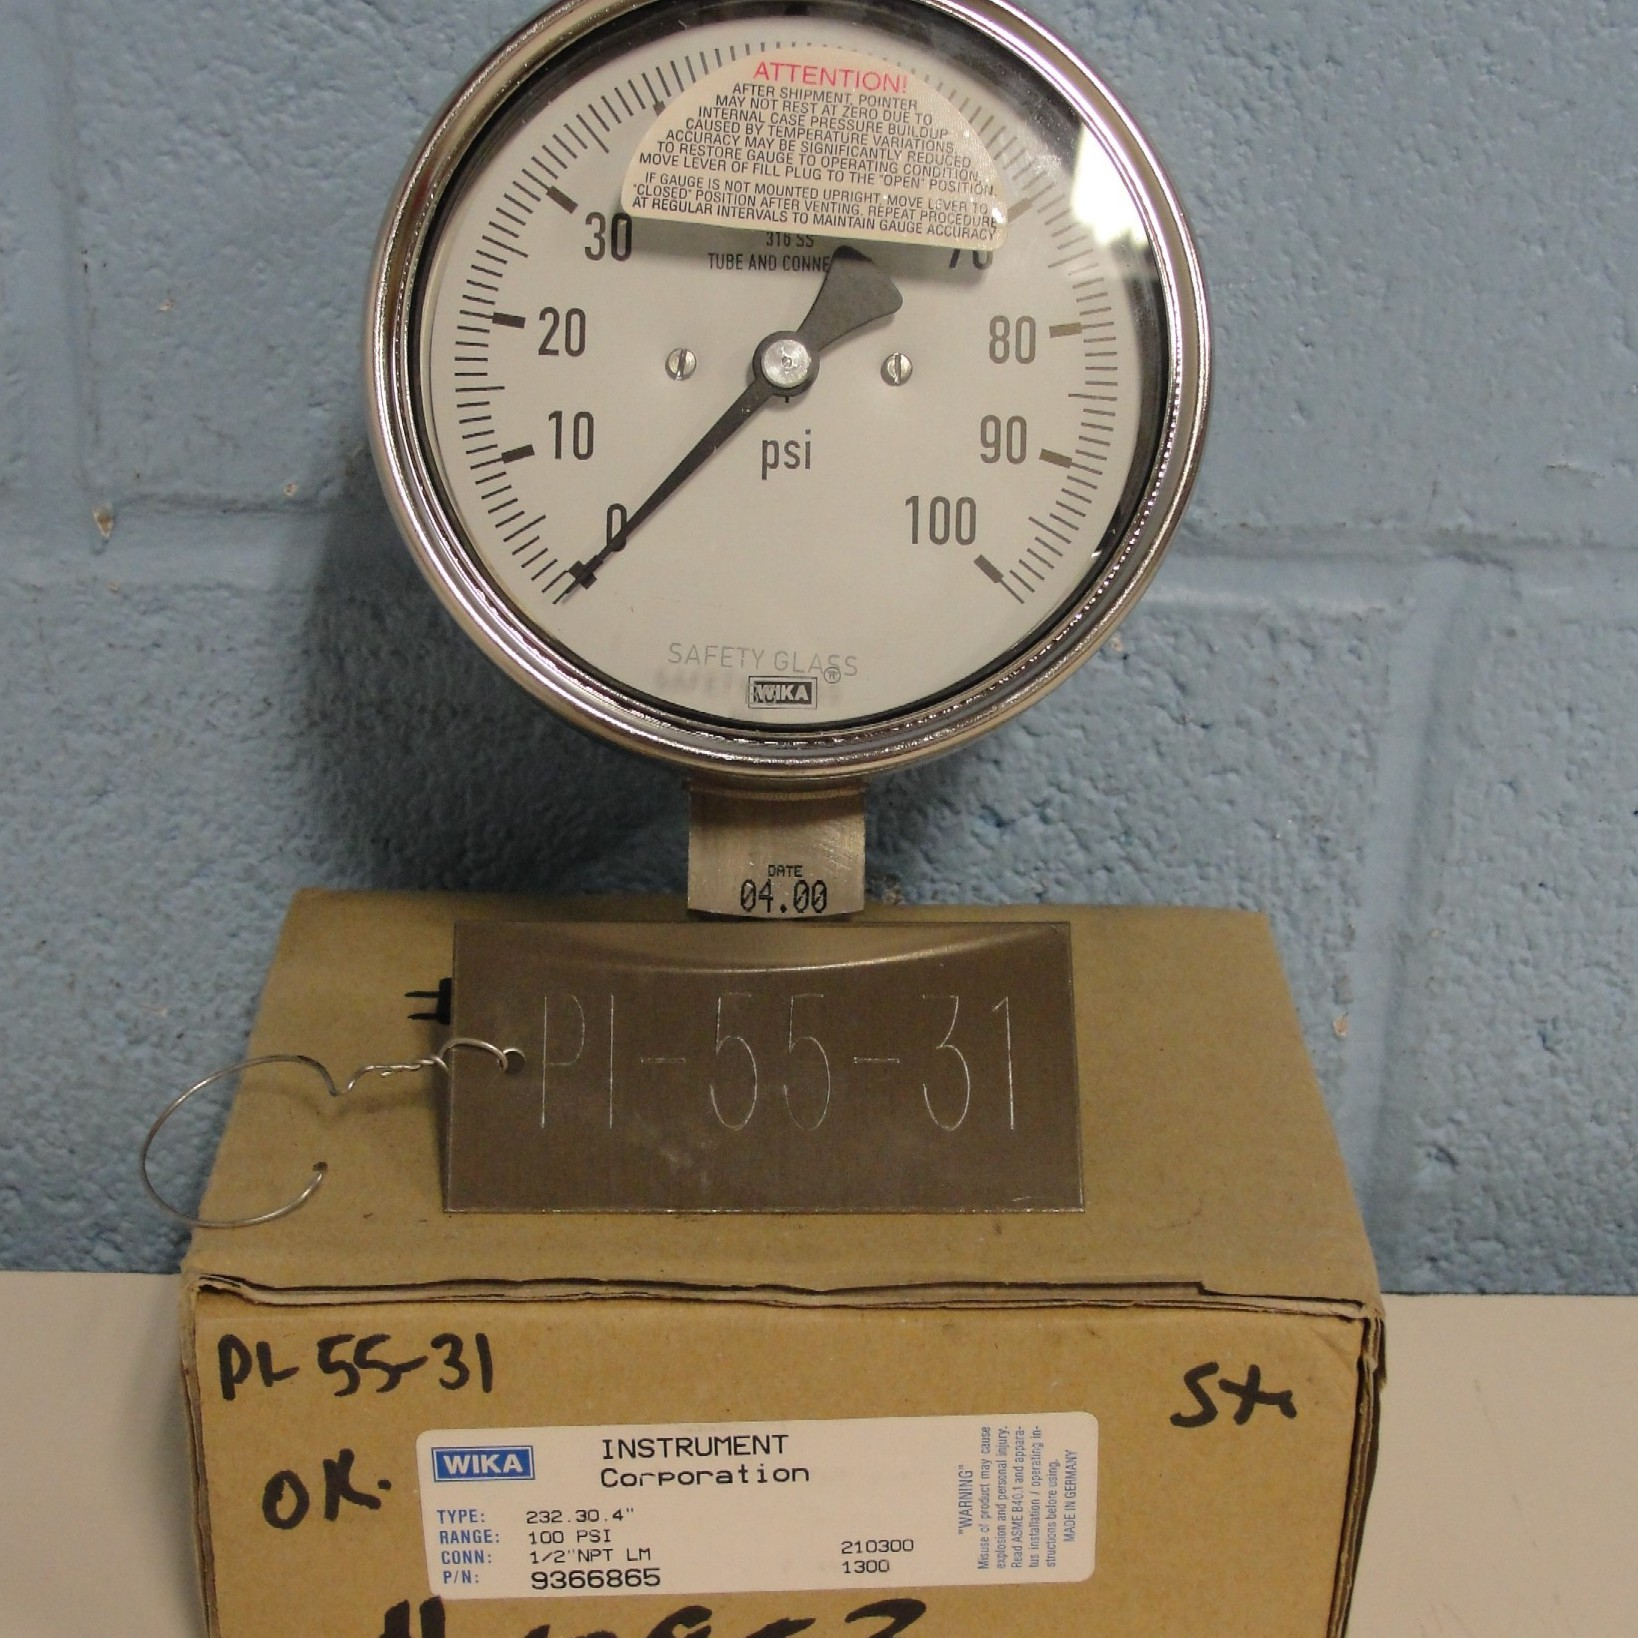 Wika Instrument Corporation Type 232.30 100PSI Gauge Image